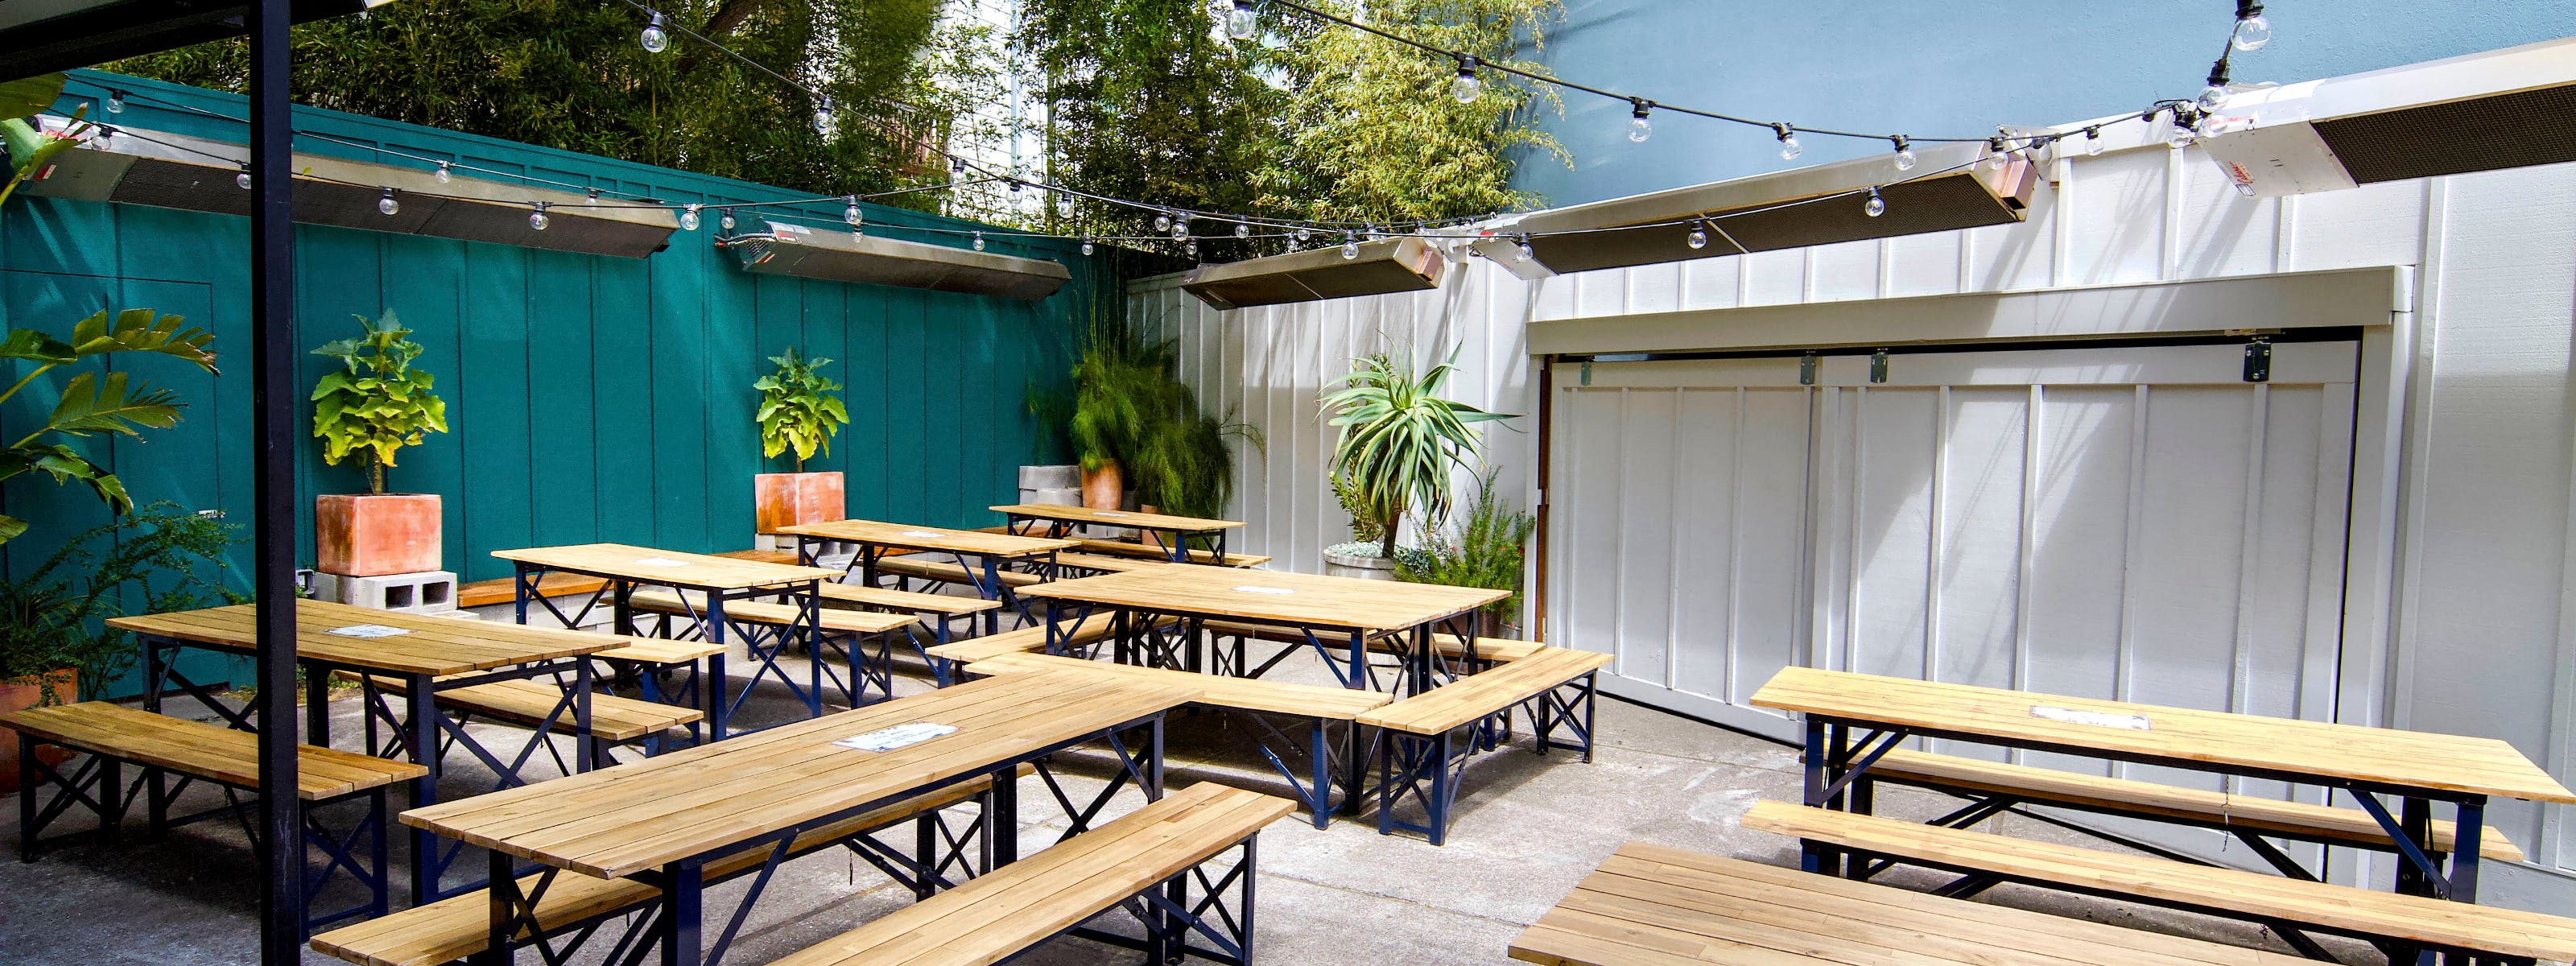 The 25 Best Places To Drink Outside In San Francisco - San Francisco - The Infatuation